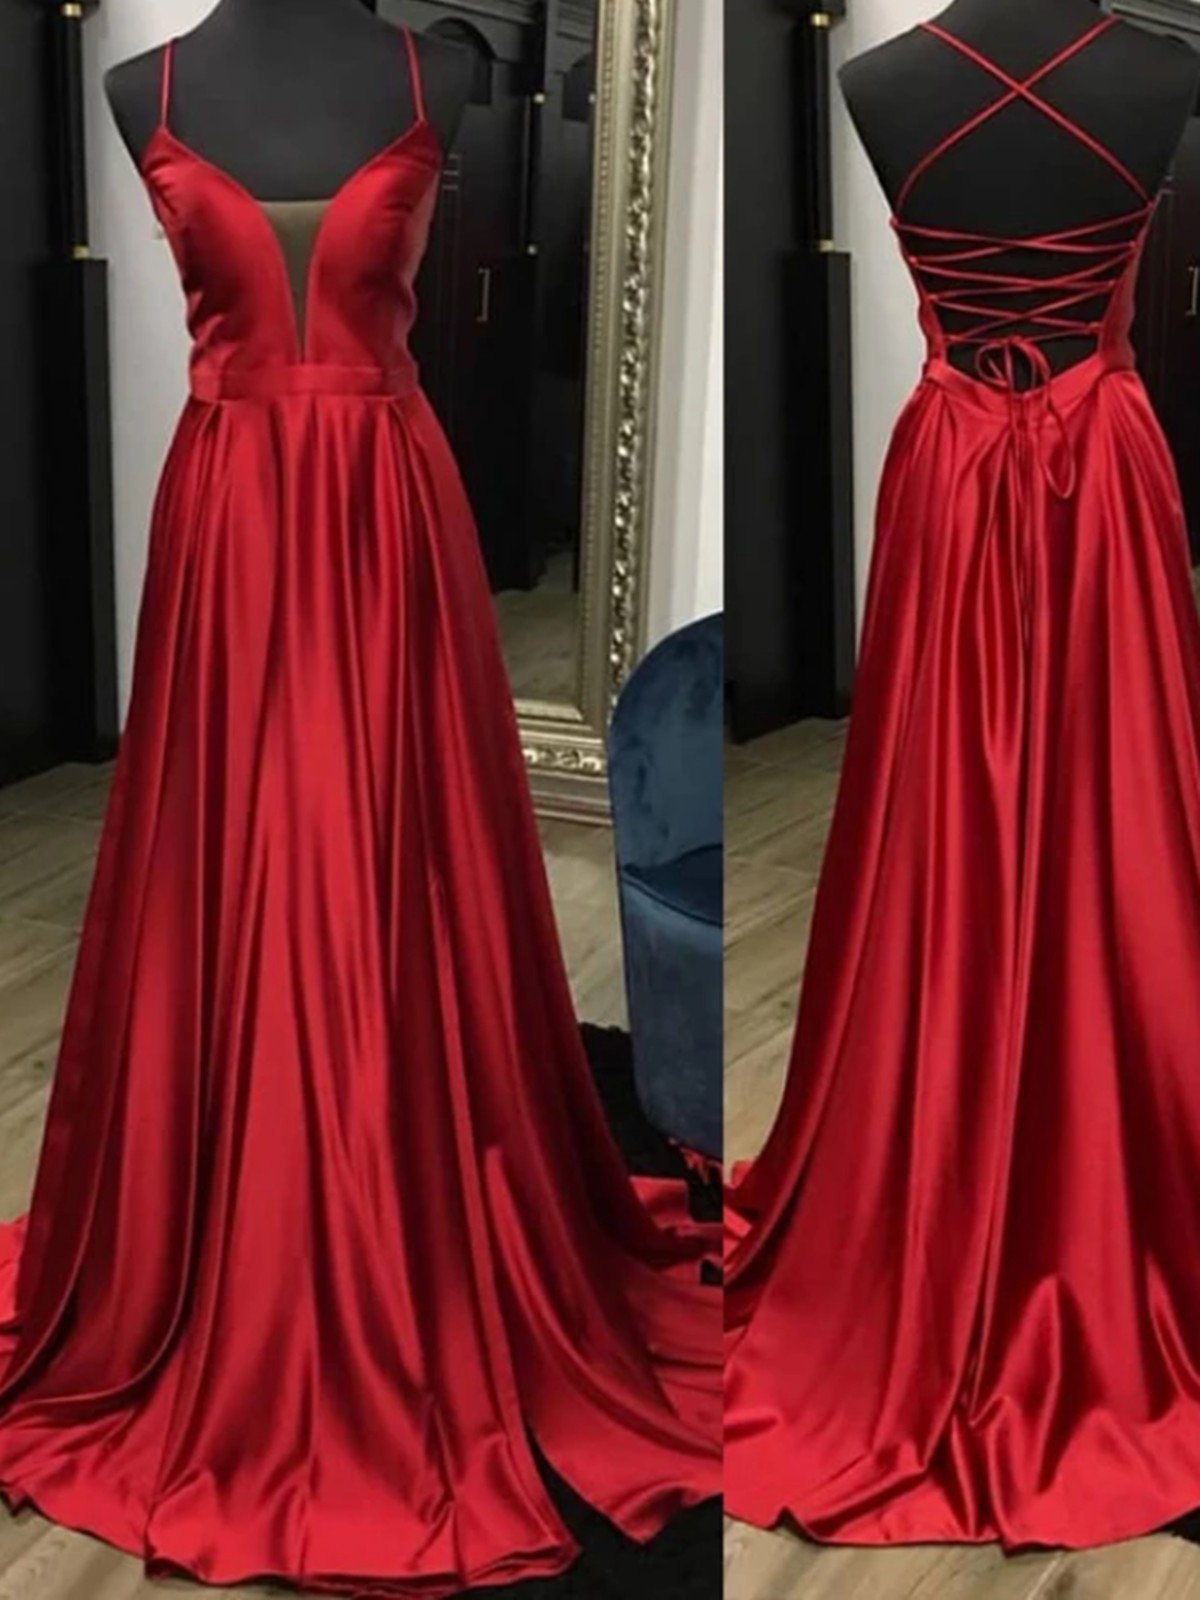 Red outfit ideas with bridal party dress, backless dress, cocktail dress